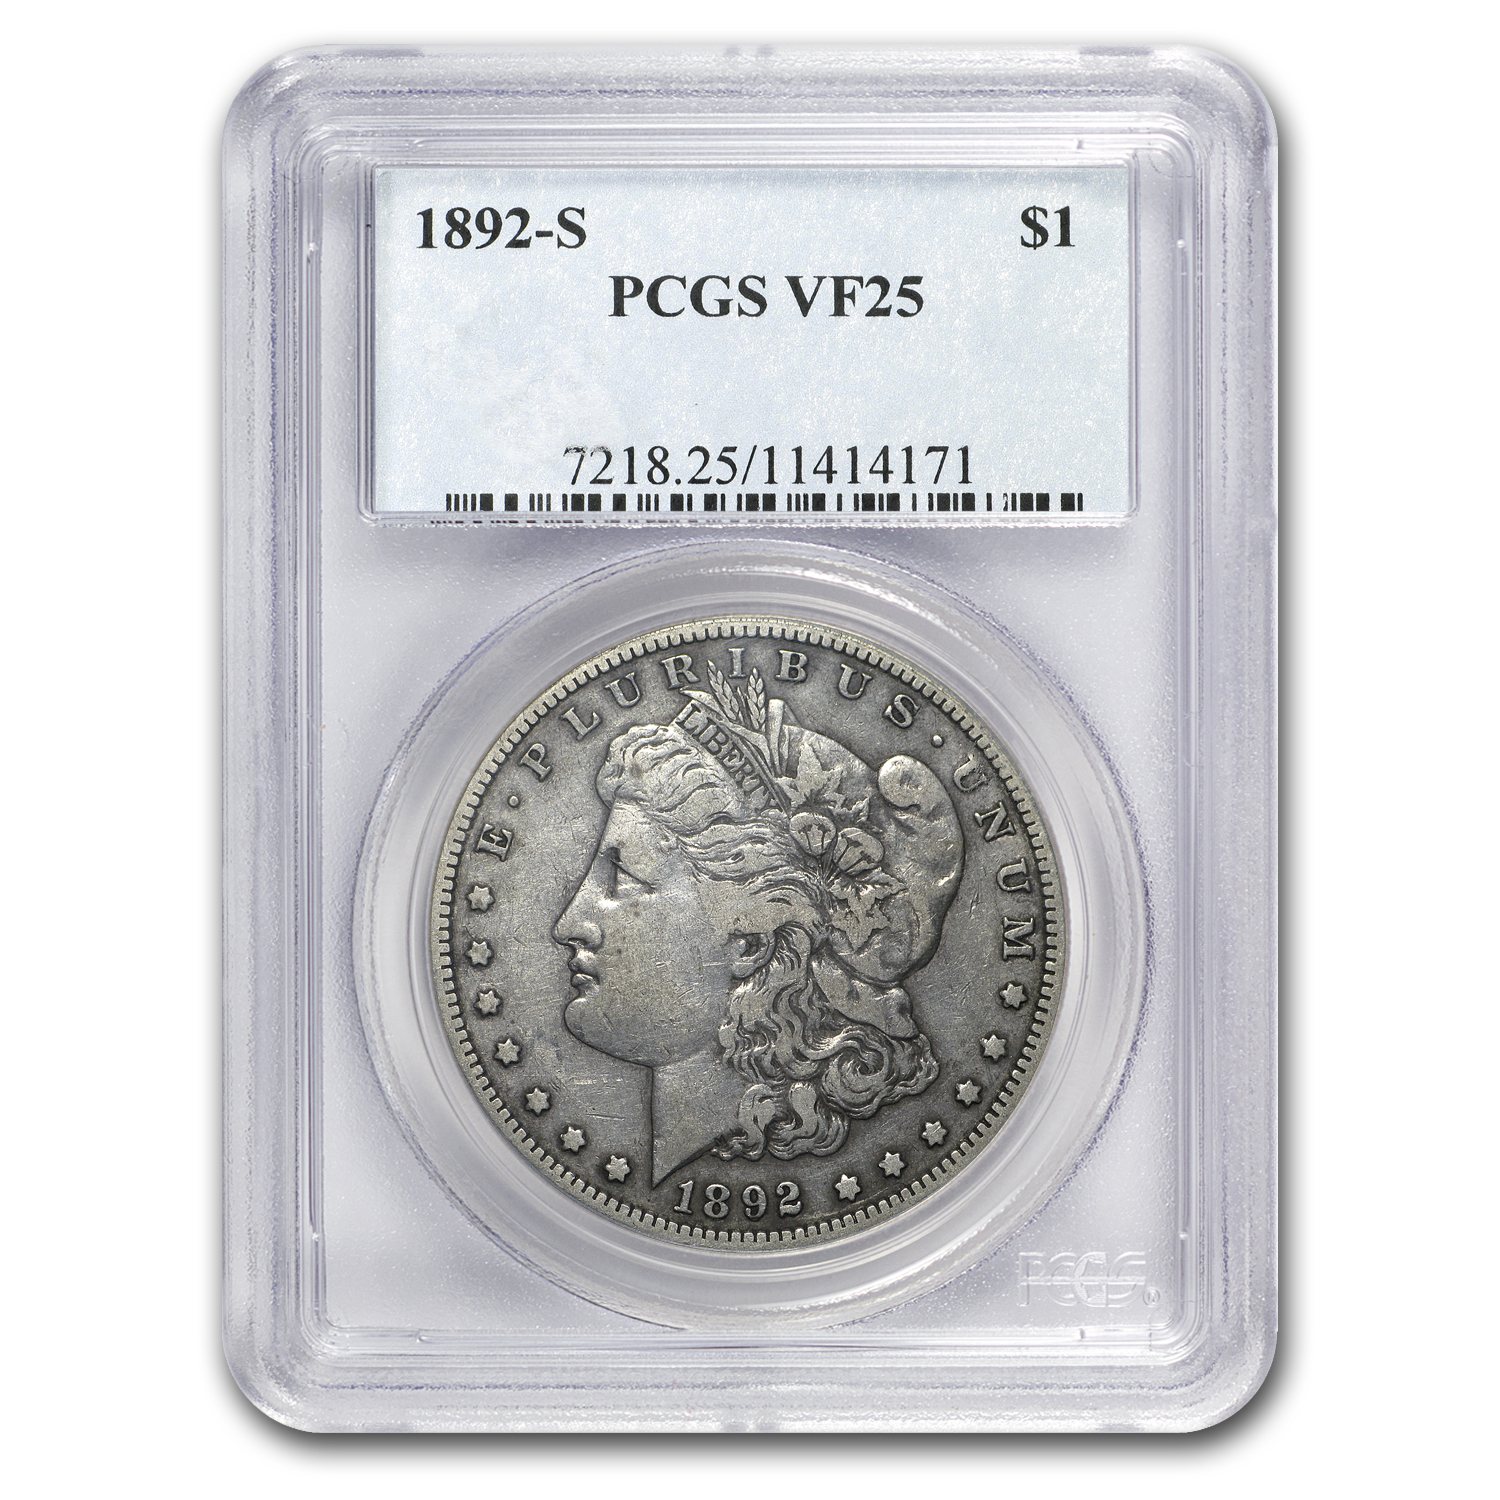 1892-S Morgan Dollar VF-25 PCGS